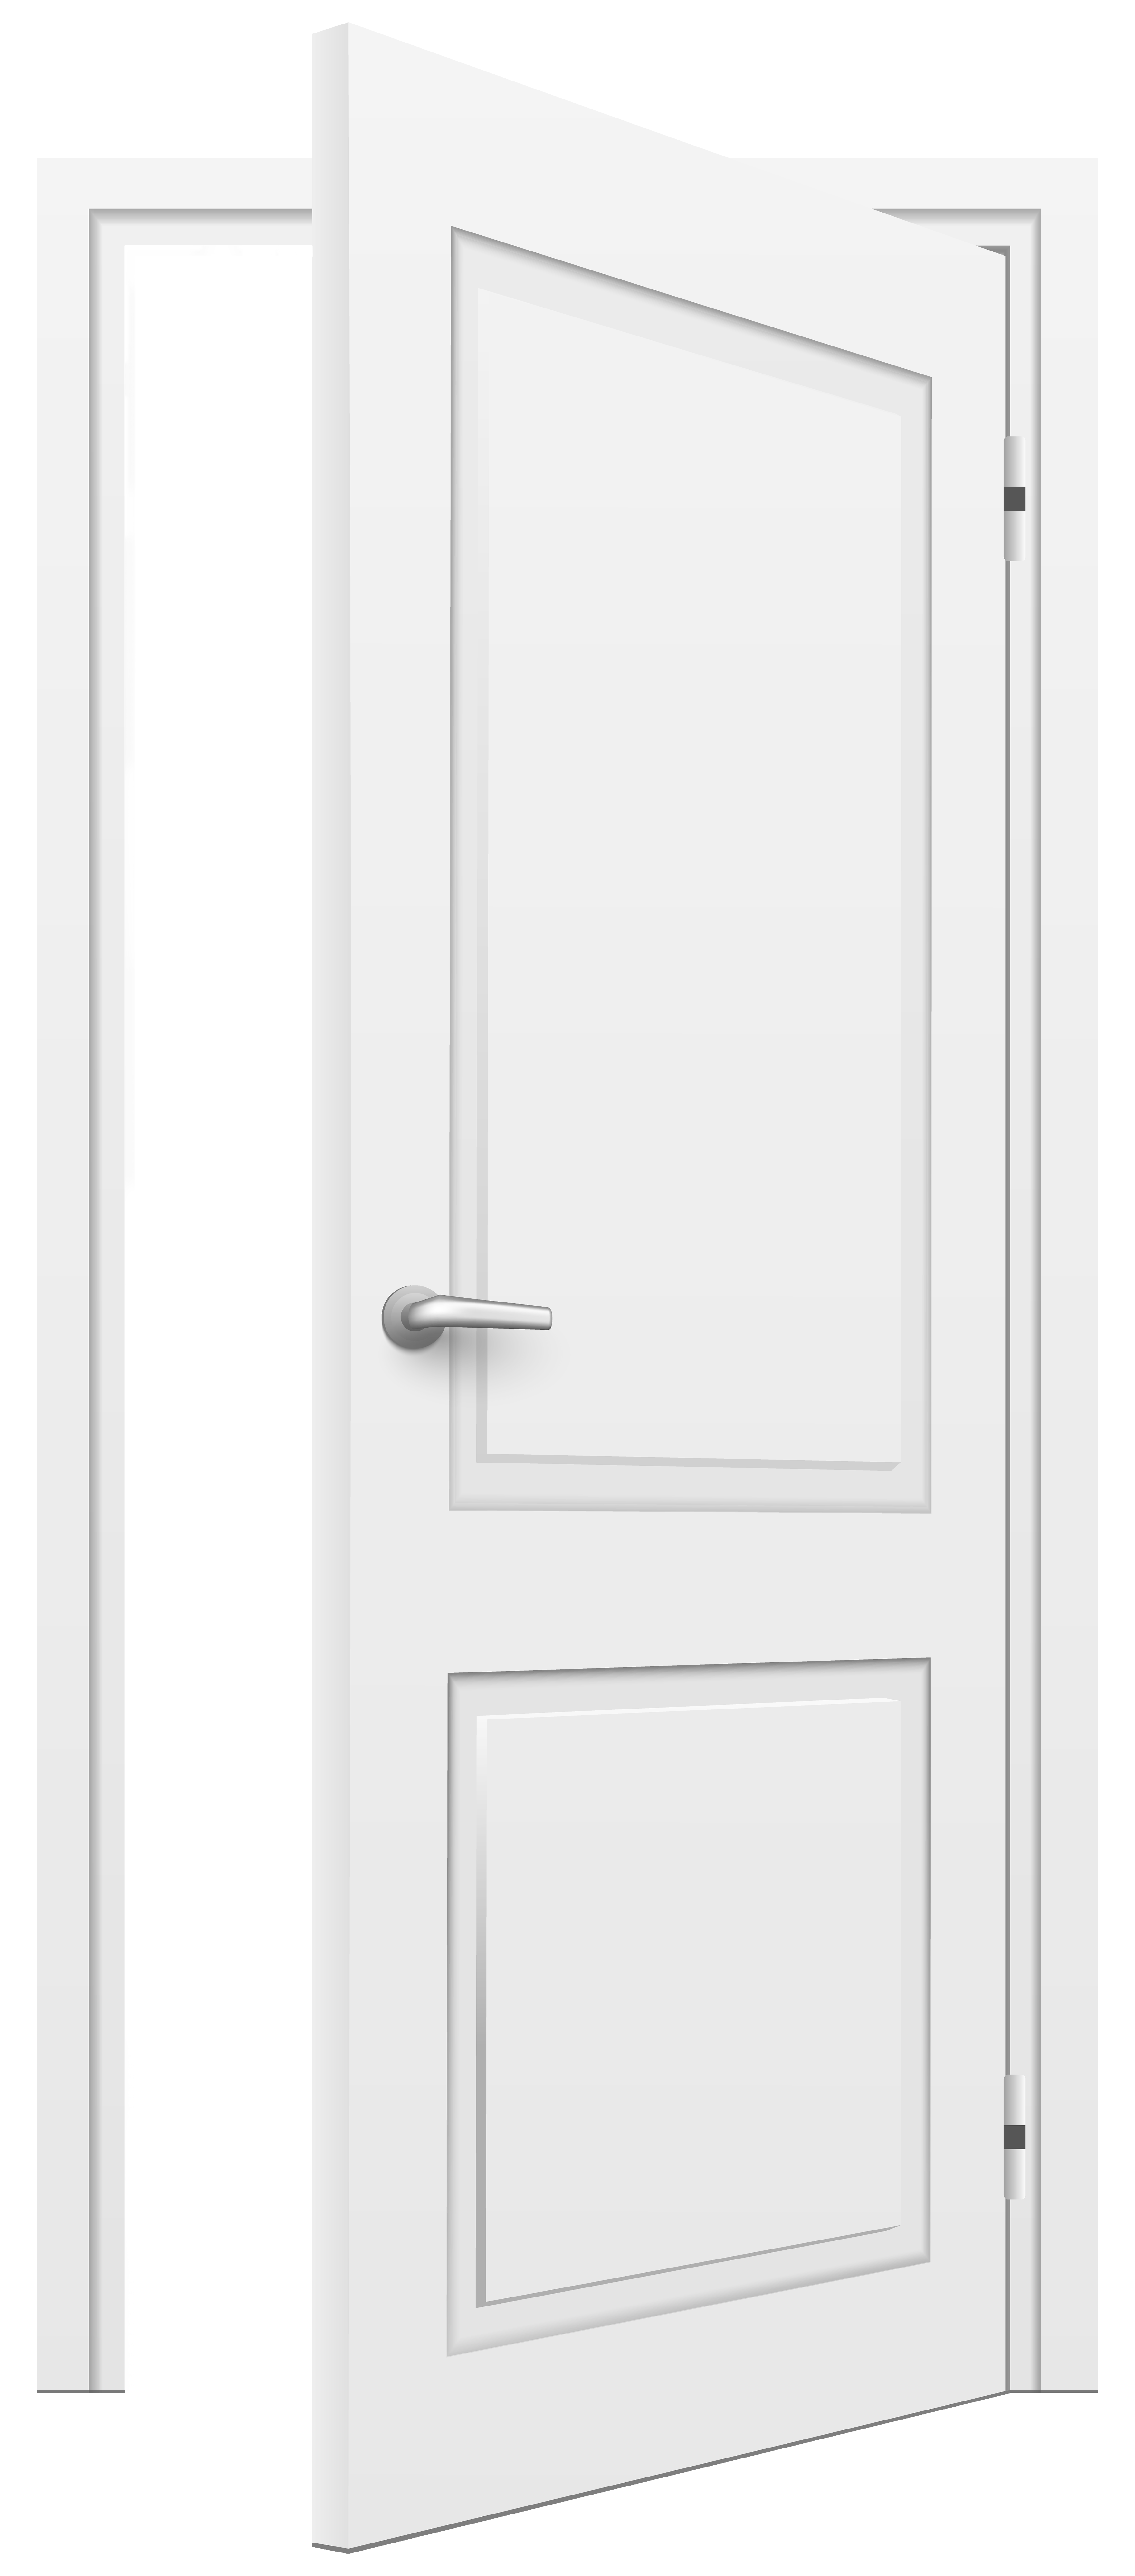 House with open door clipart image black and white Open Door White PNG Clip Art - Best WEB Clipart image black and white